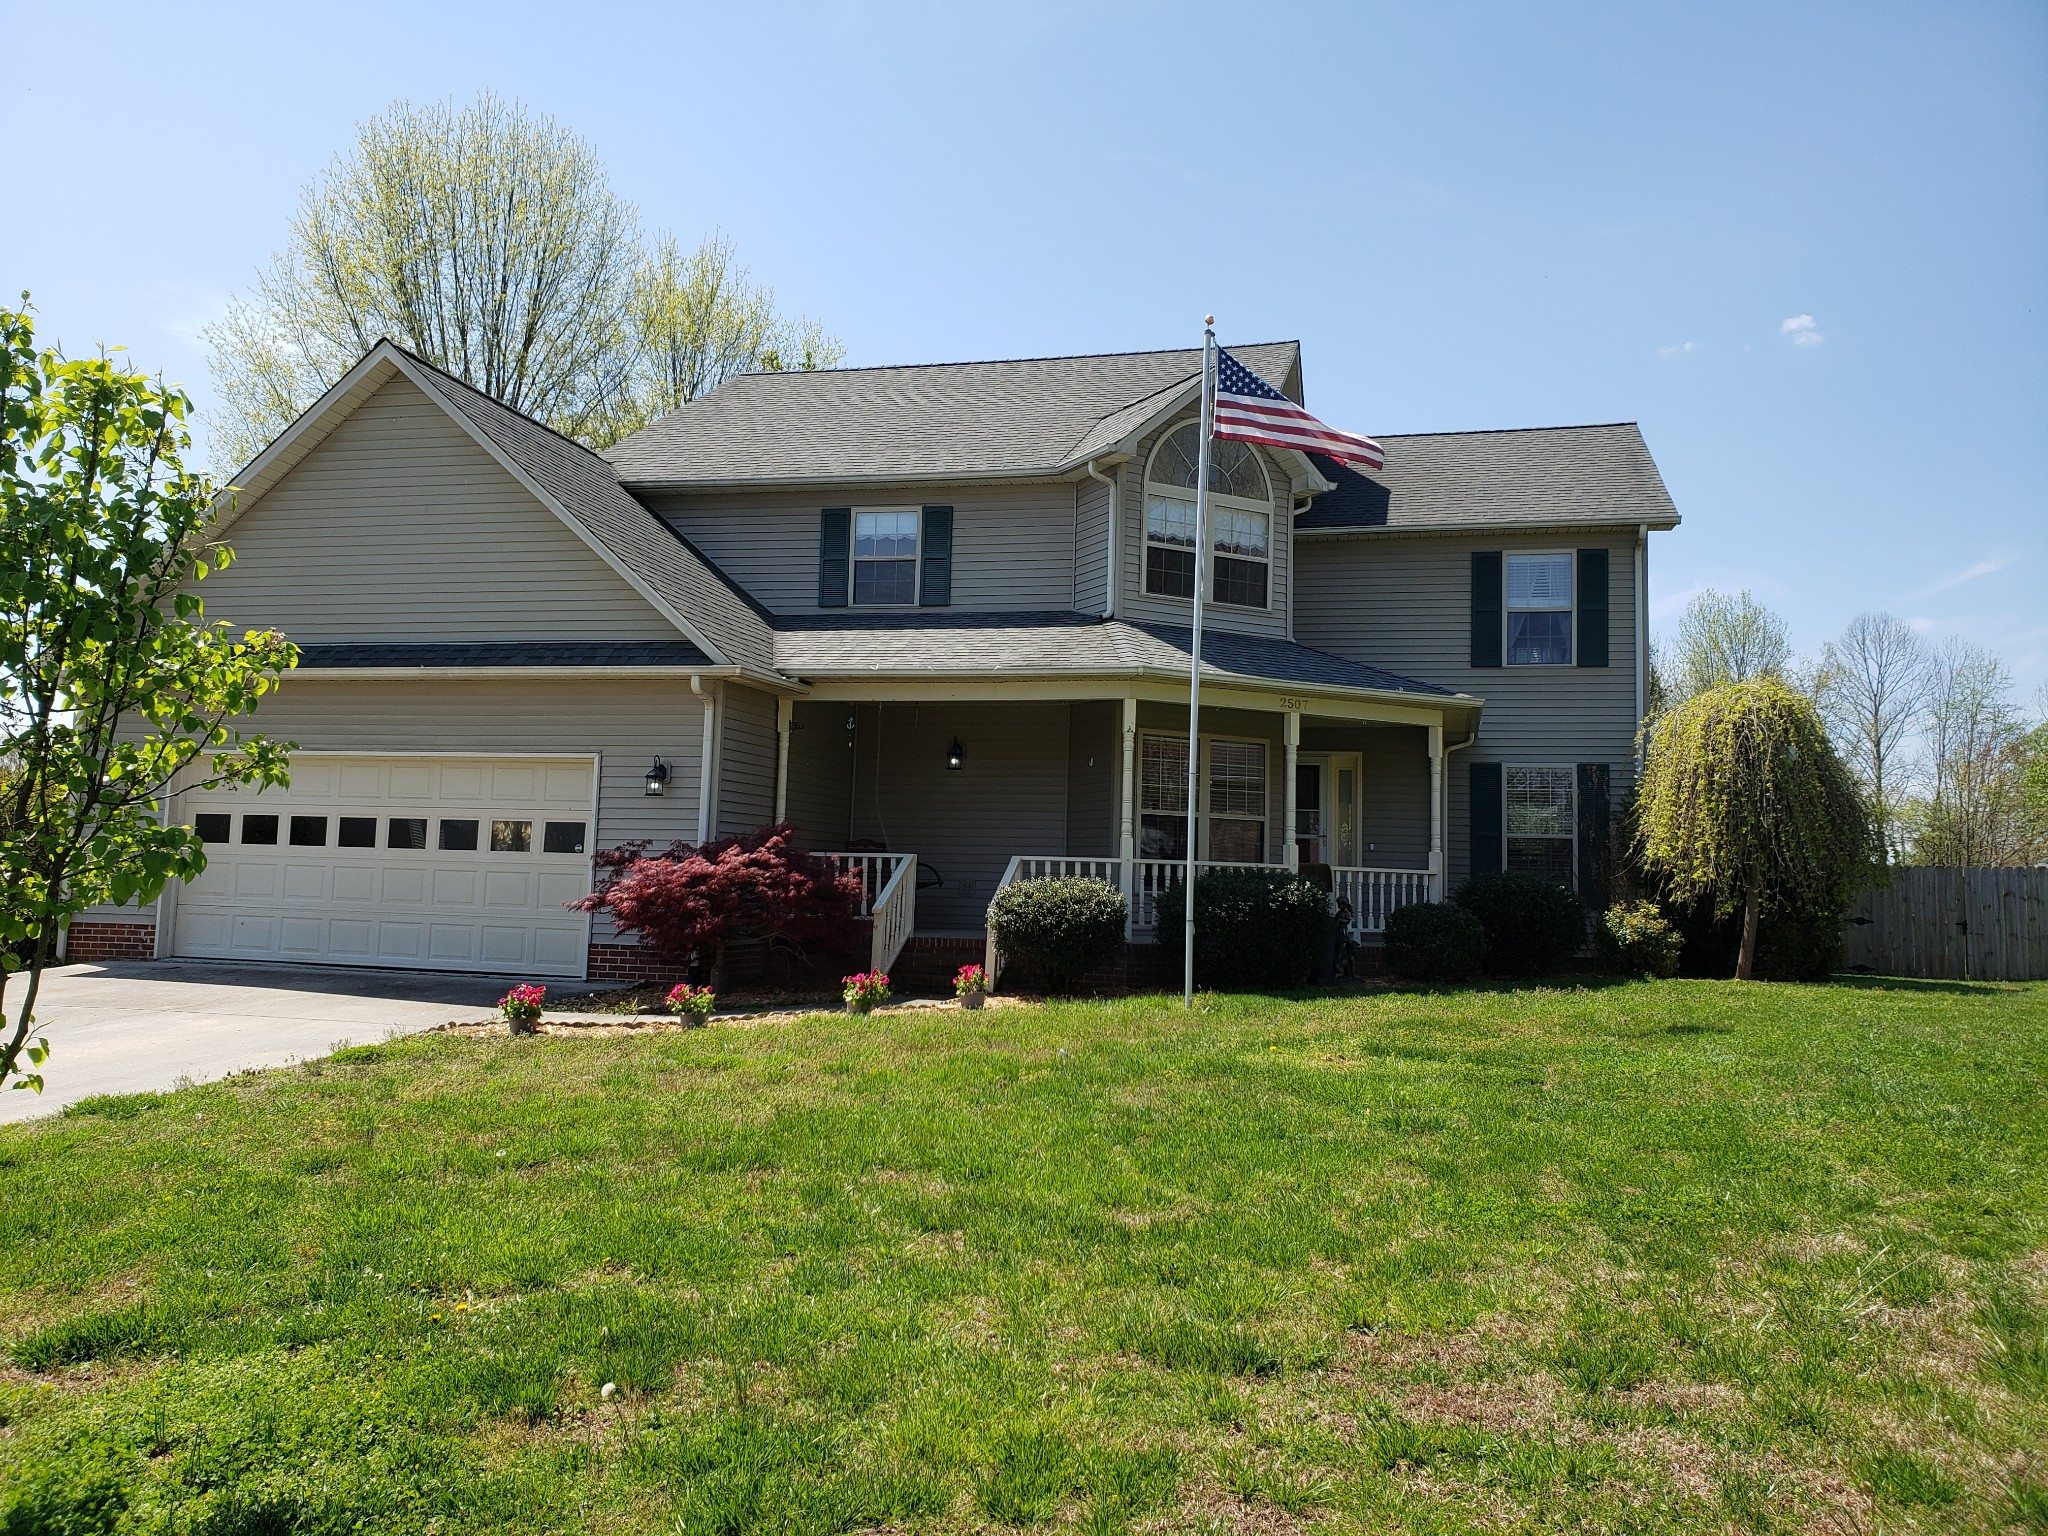 2507 Park West Dr, Cookeville, TN 38501 - Cookeville, TN real estate listing